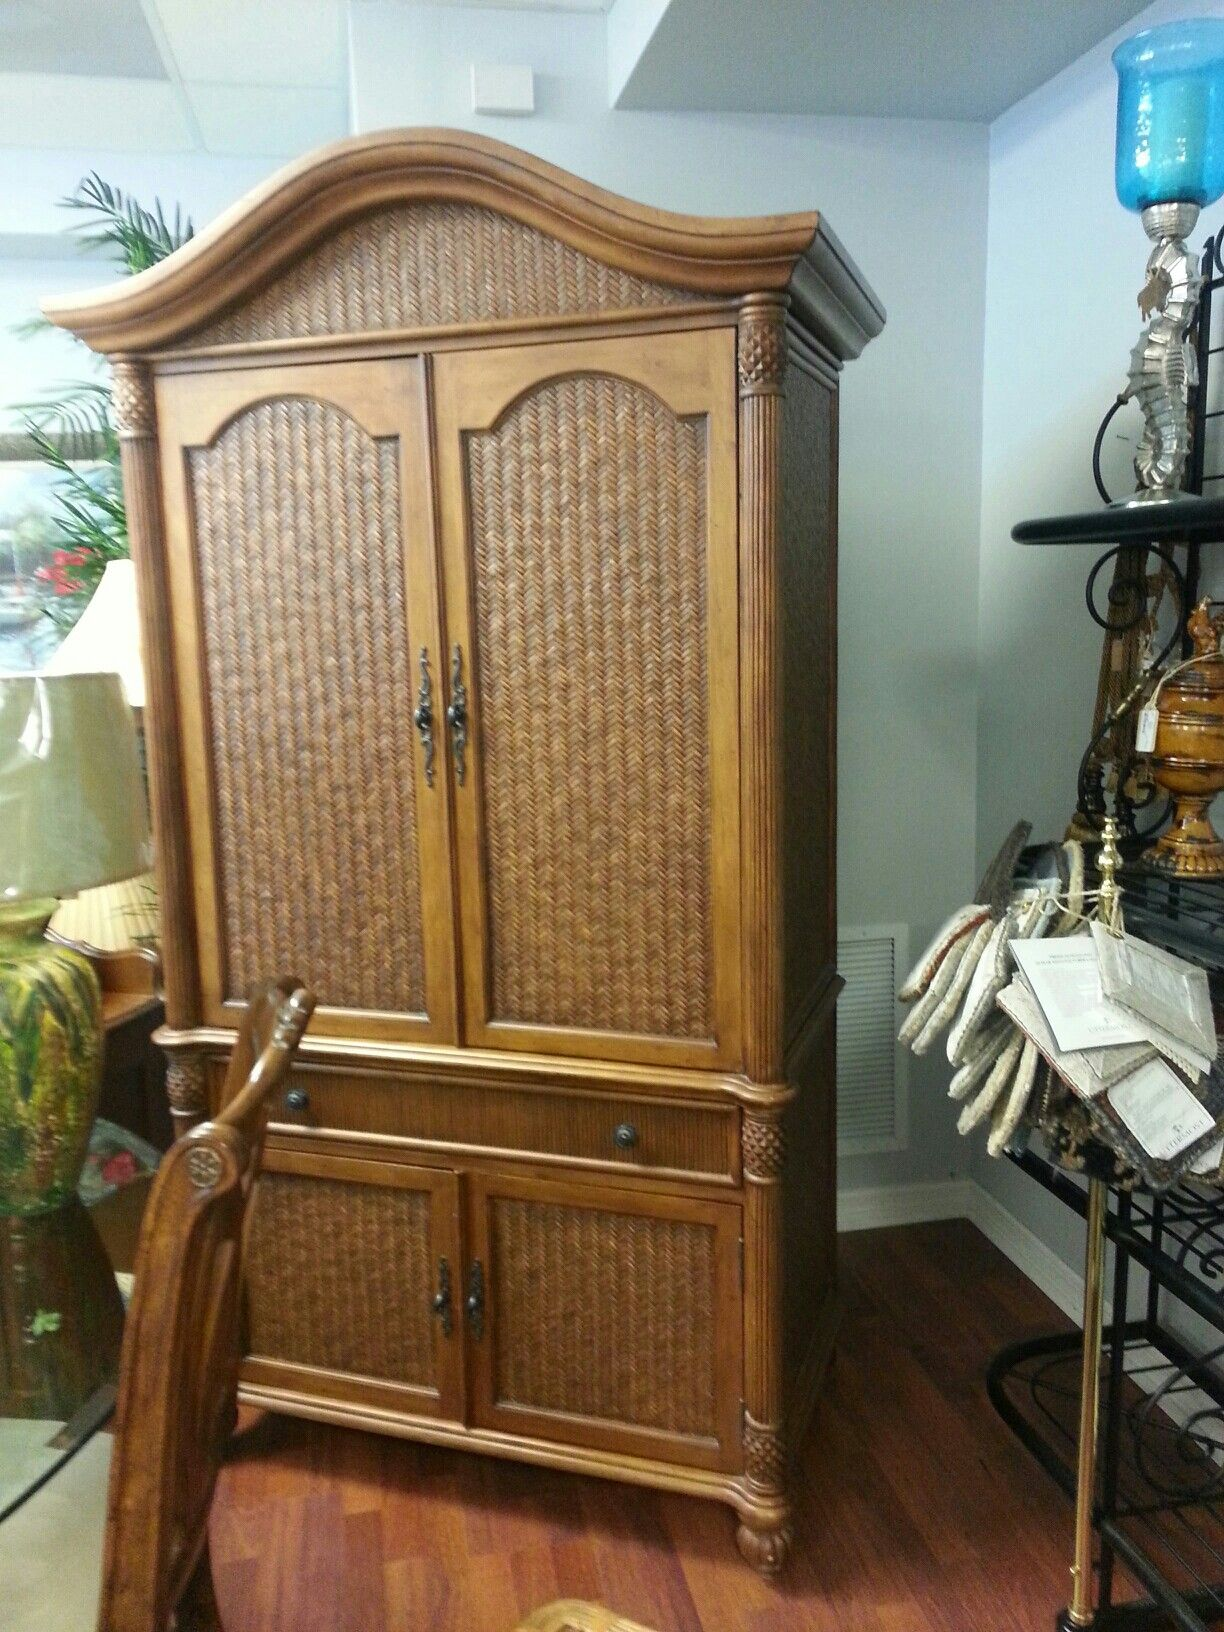 Gorgeous Rattan Armoire - Pelican Reef makes quality furniture and ...